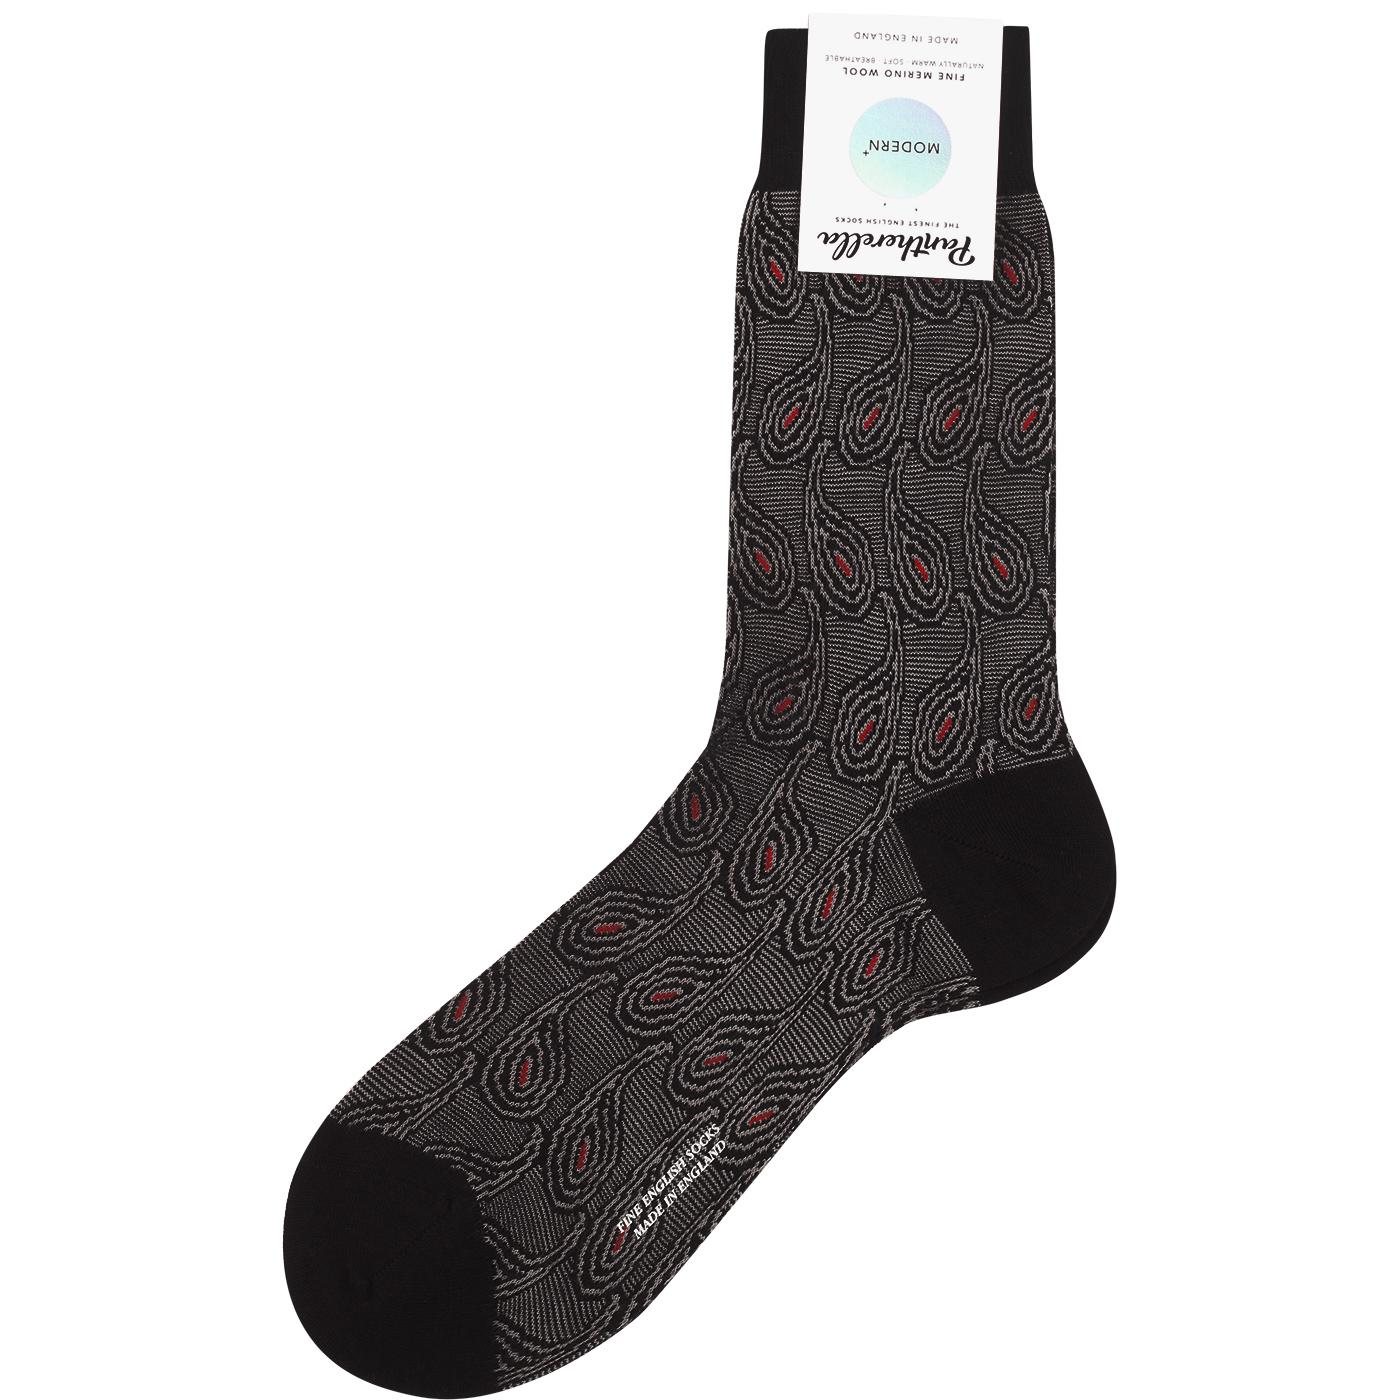 + Priestley PANTHERELLA Paisley Psychedelic Socks